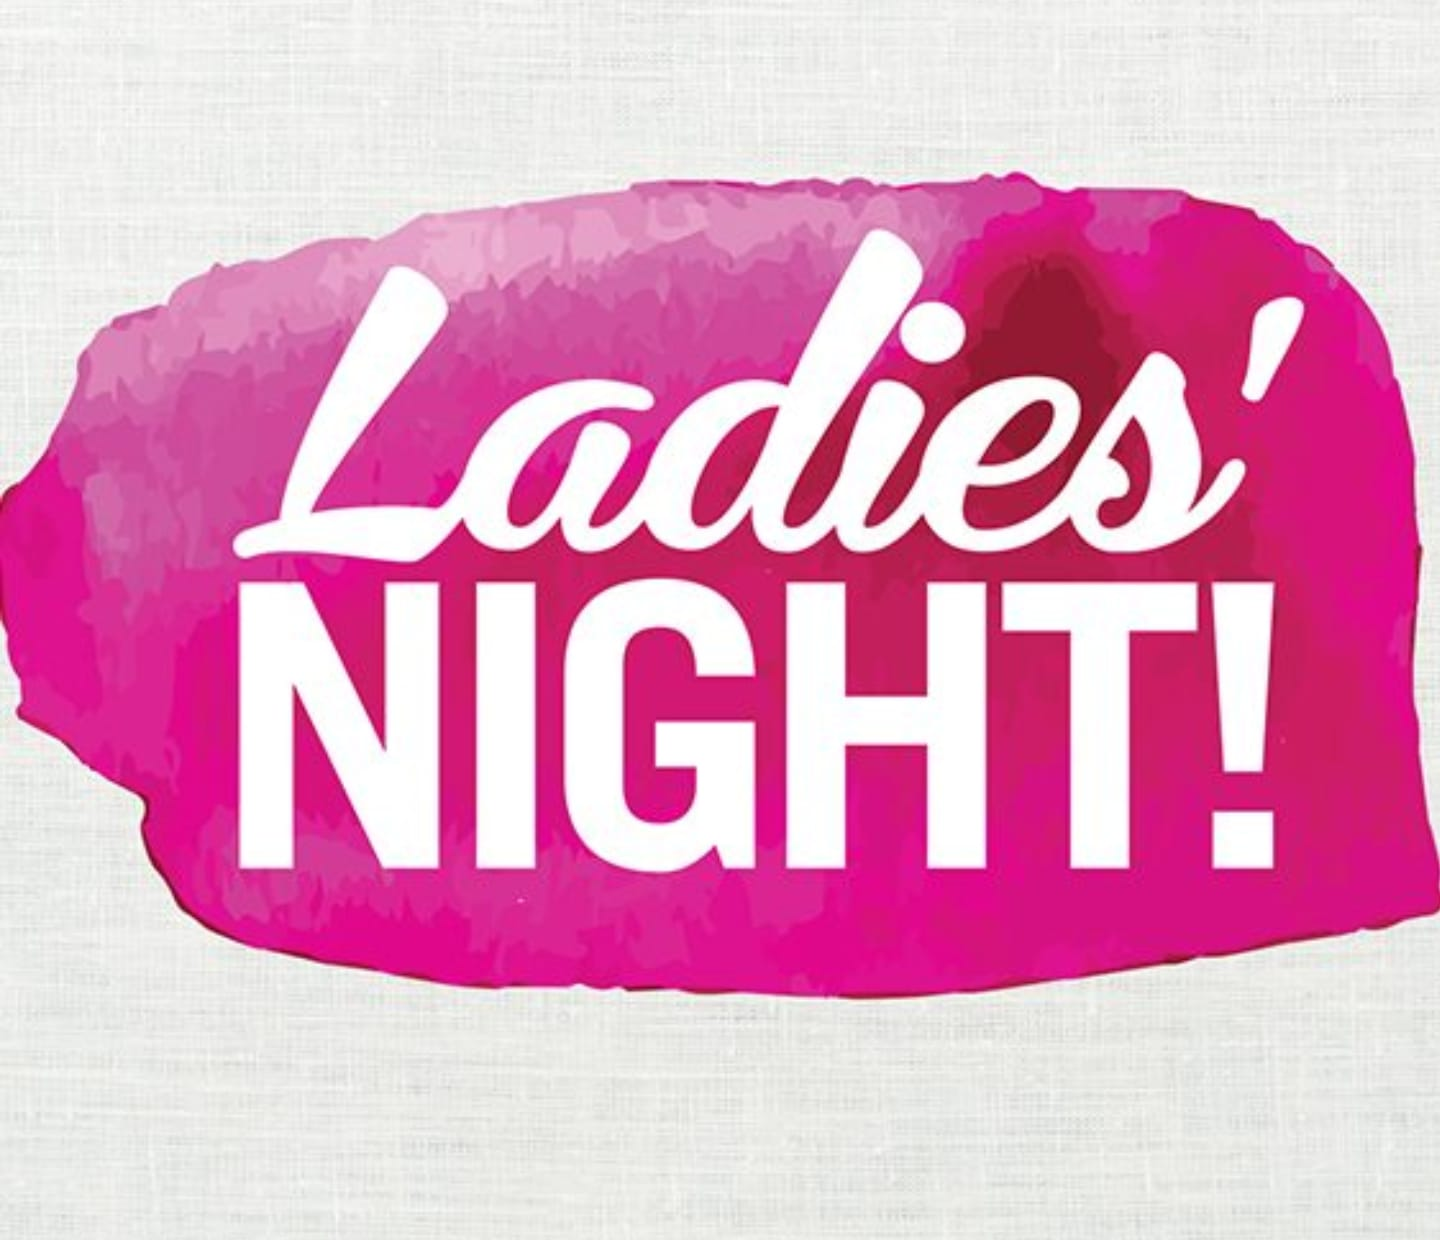 ladies_night-1.jpg